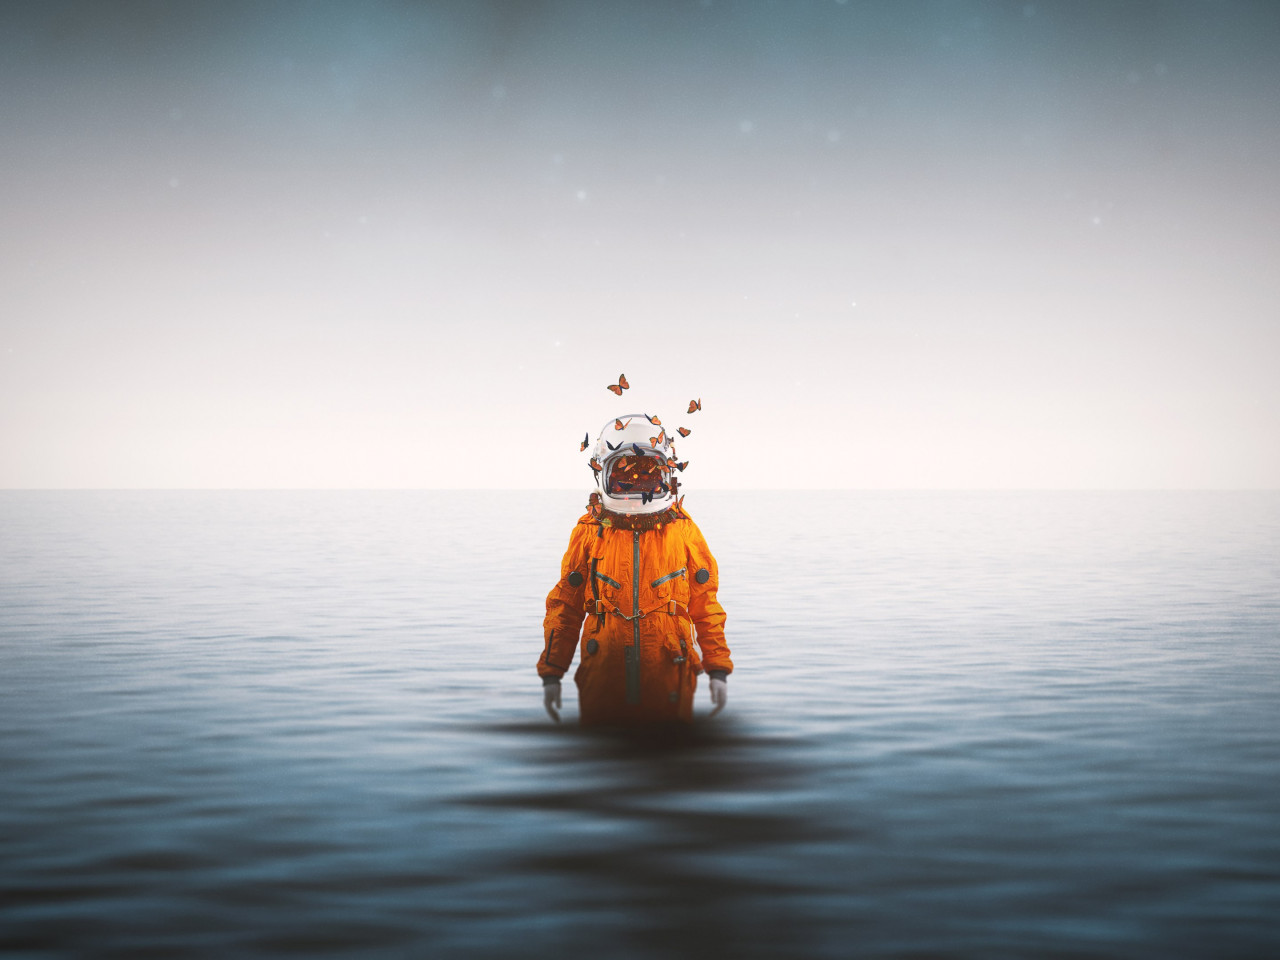 Lonely astronaut wallpaper 1280x960